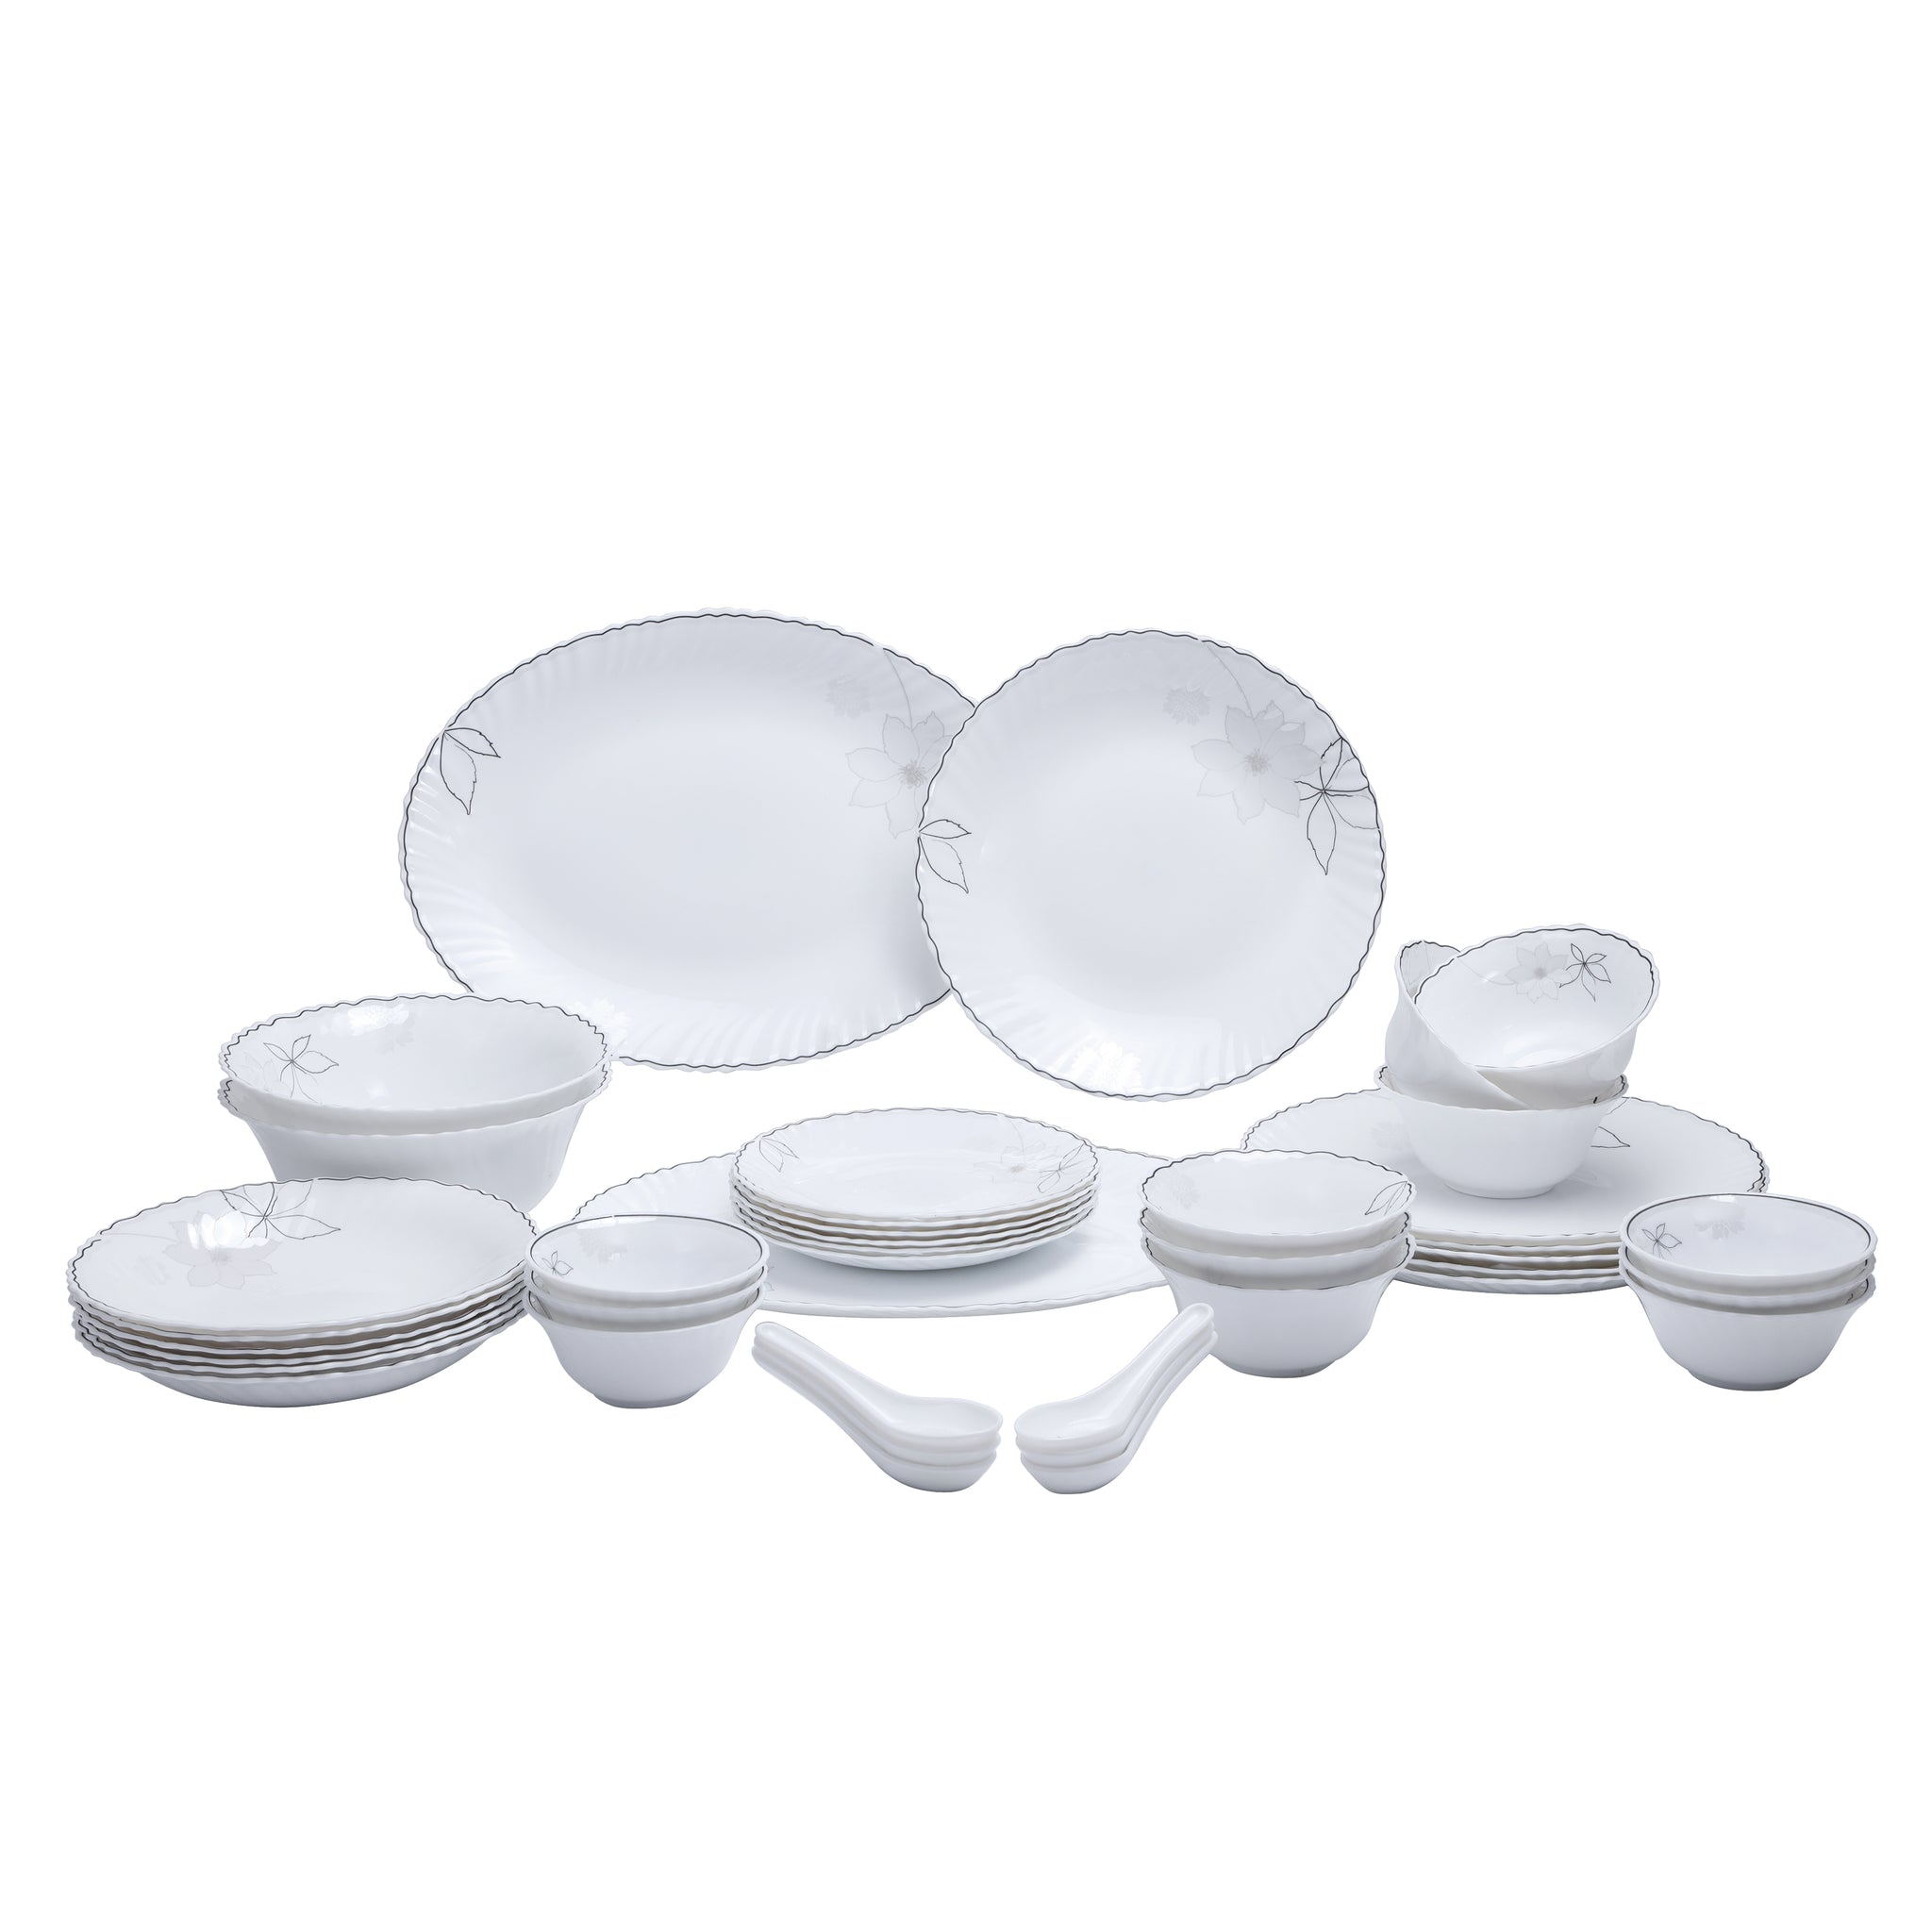 40 Pcs Opal Glassware Dinner Set 1X1